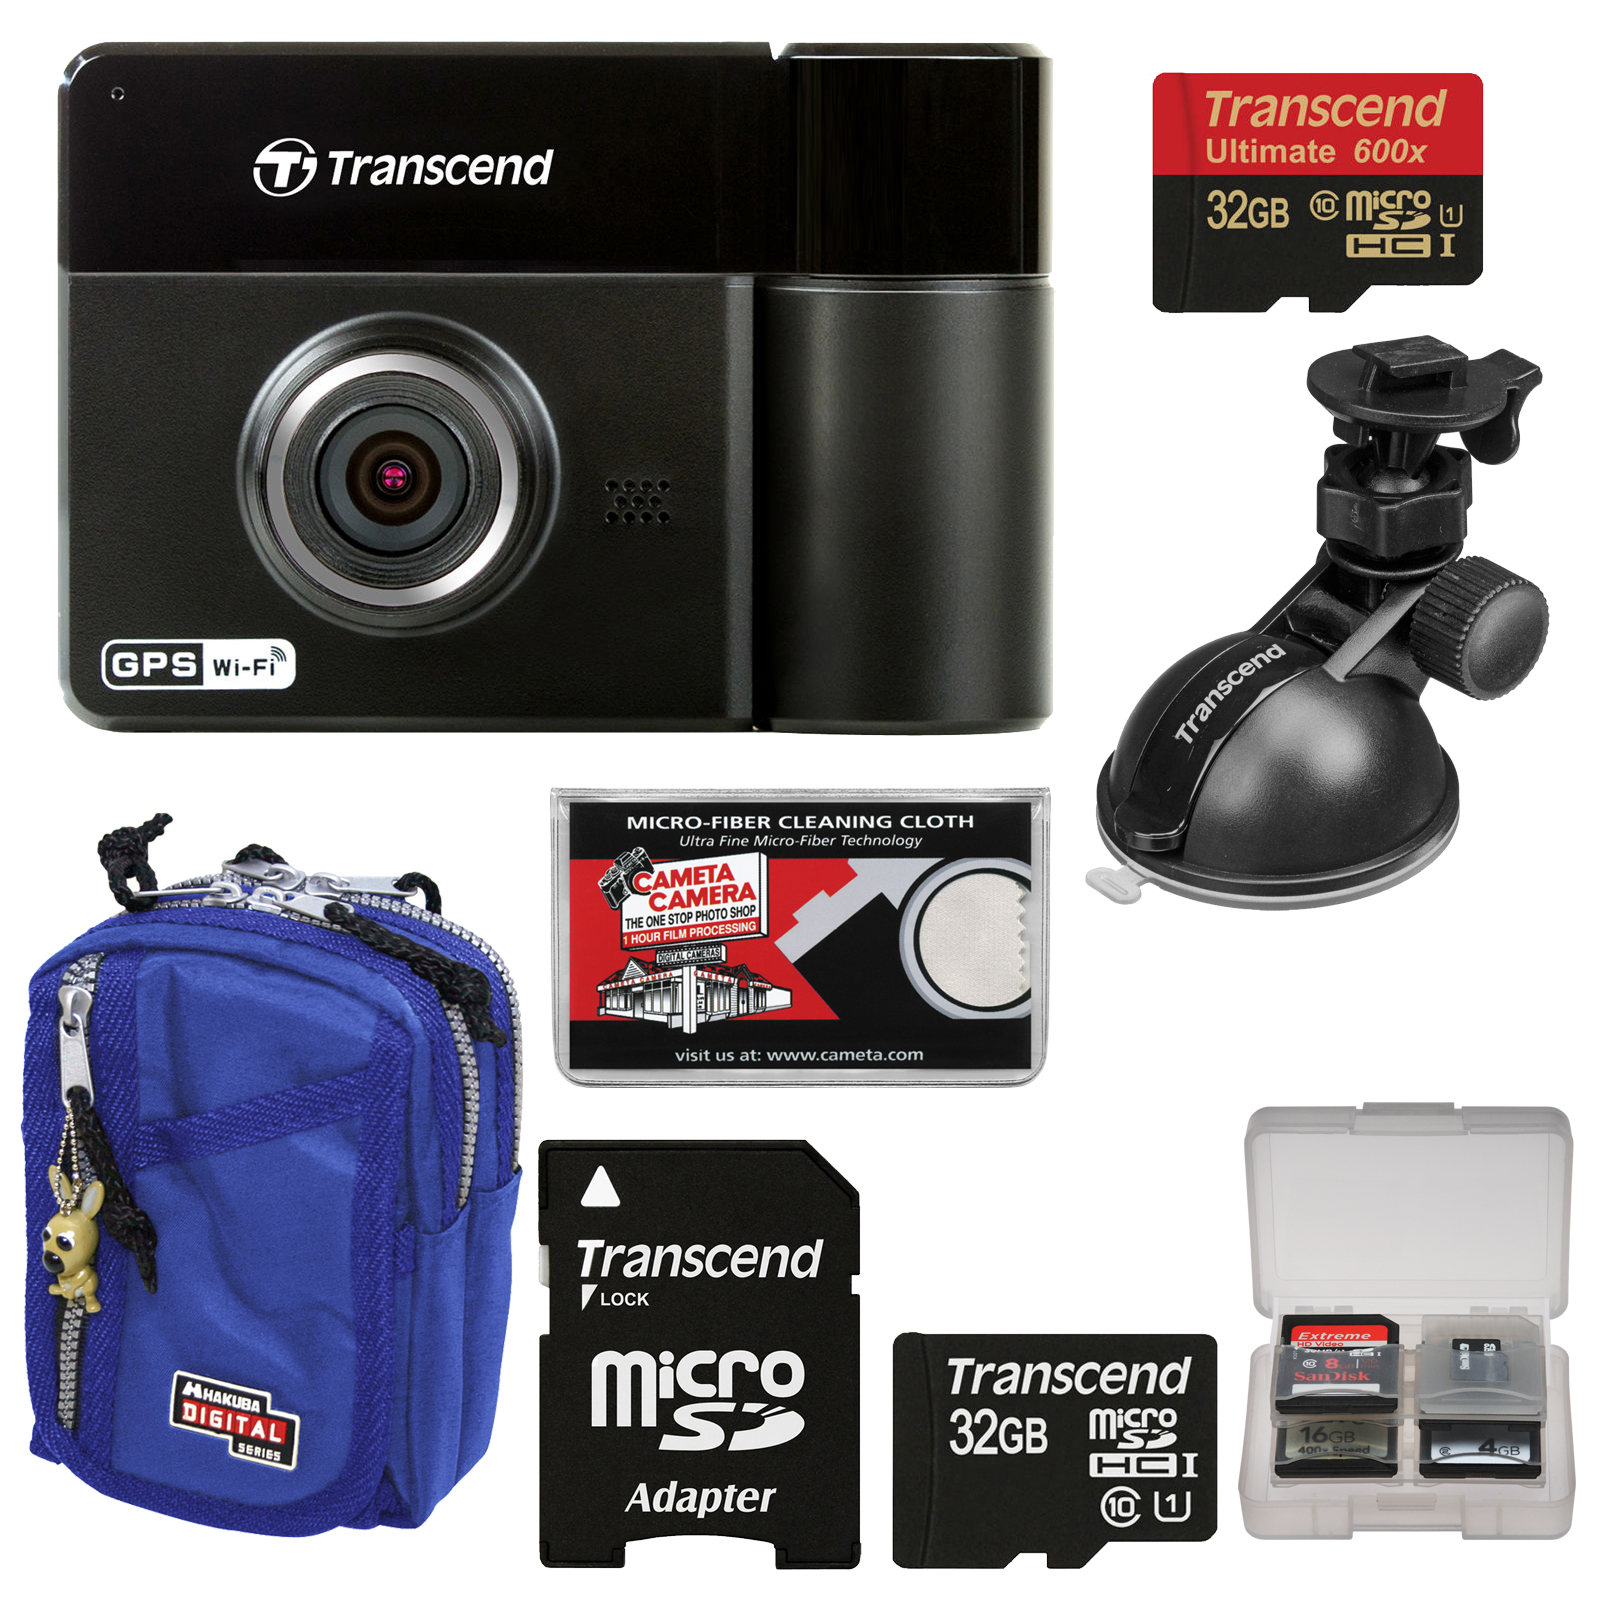 Transcend DrivePro 520 1080p HD GPS Wi-Fi Car Dashboard Video Recorder with Suction Cup + (2) 32GB Cards + Case + Kit